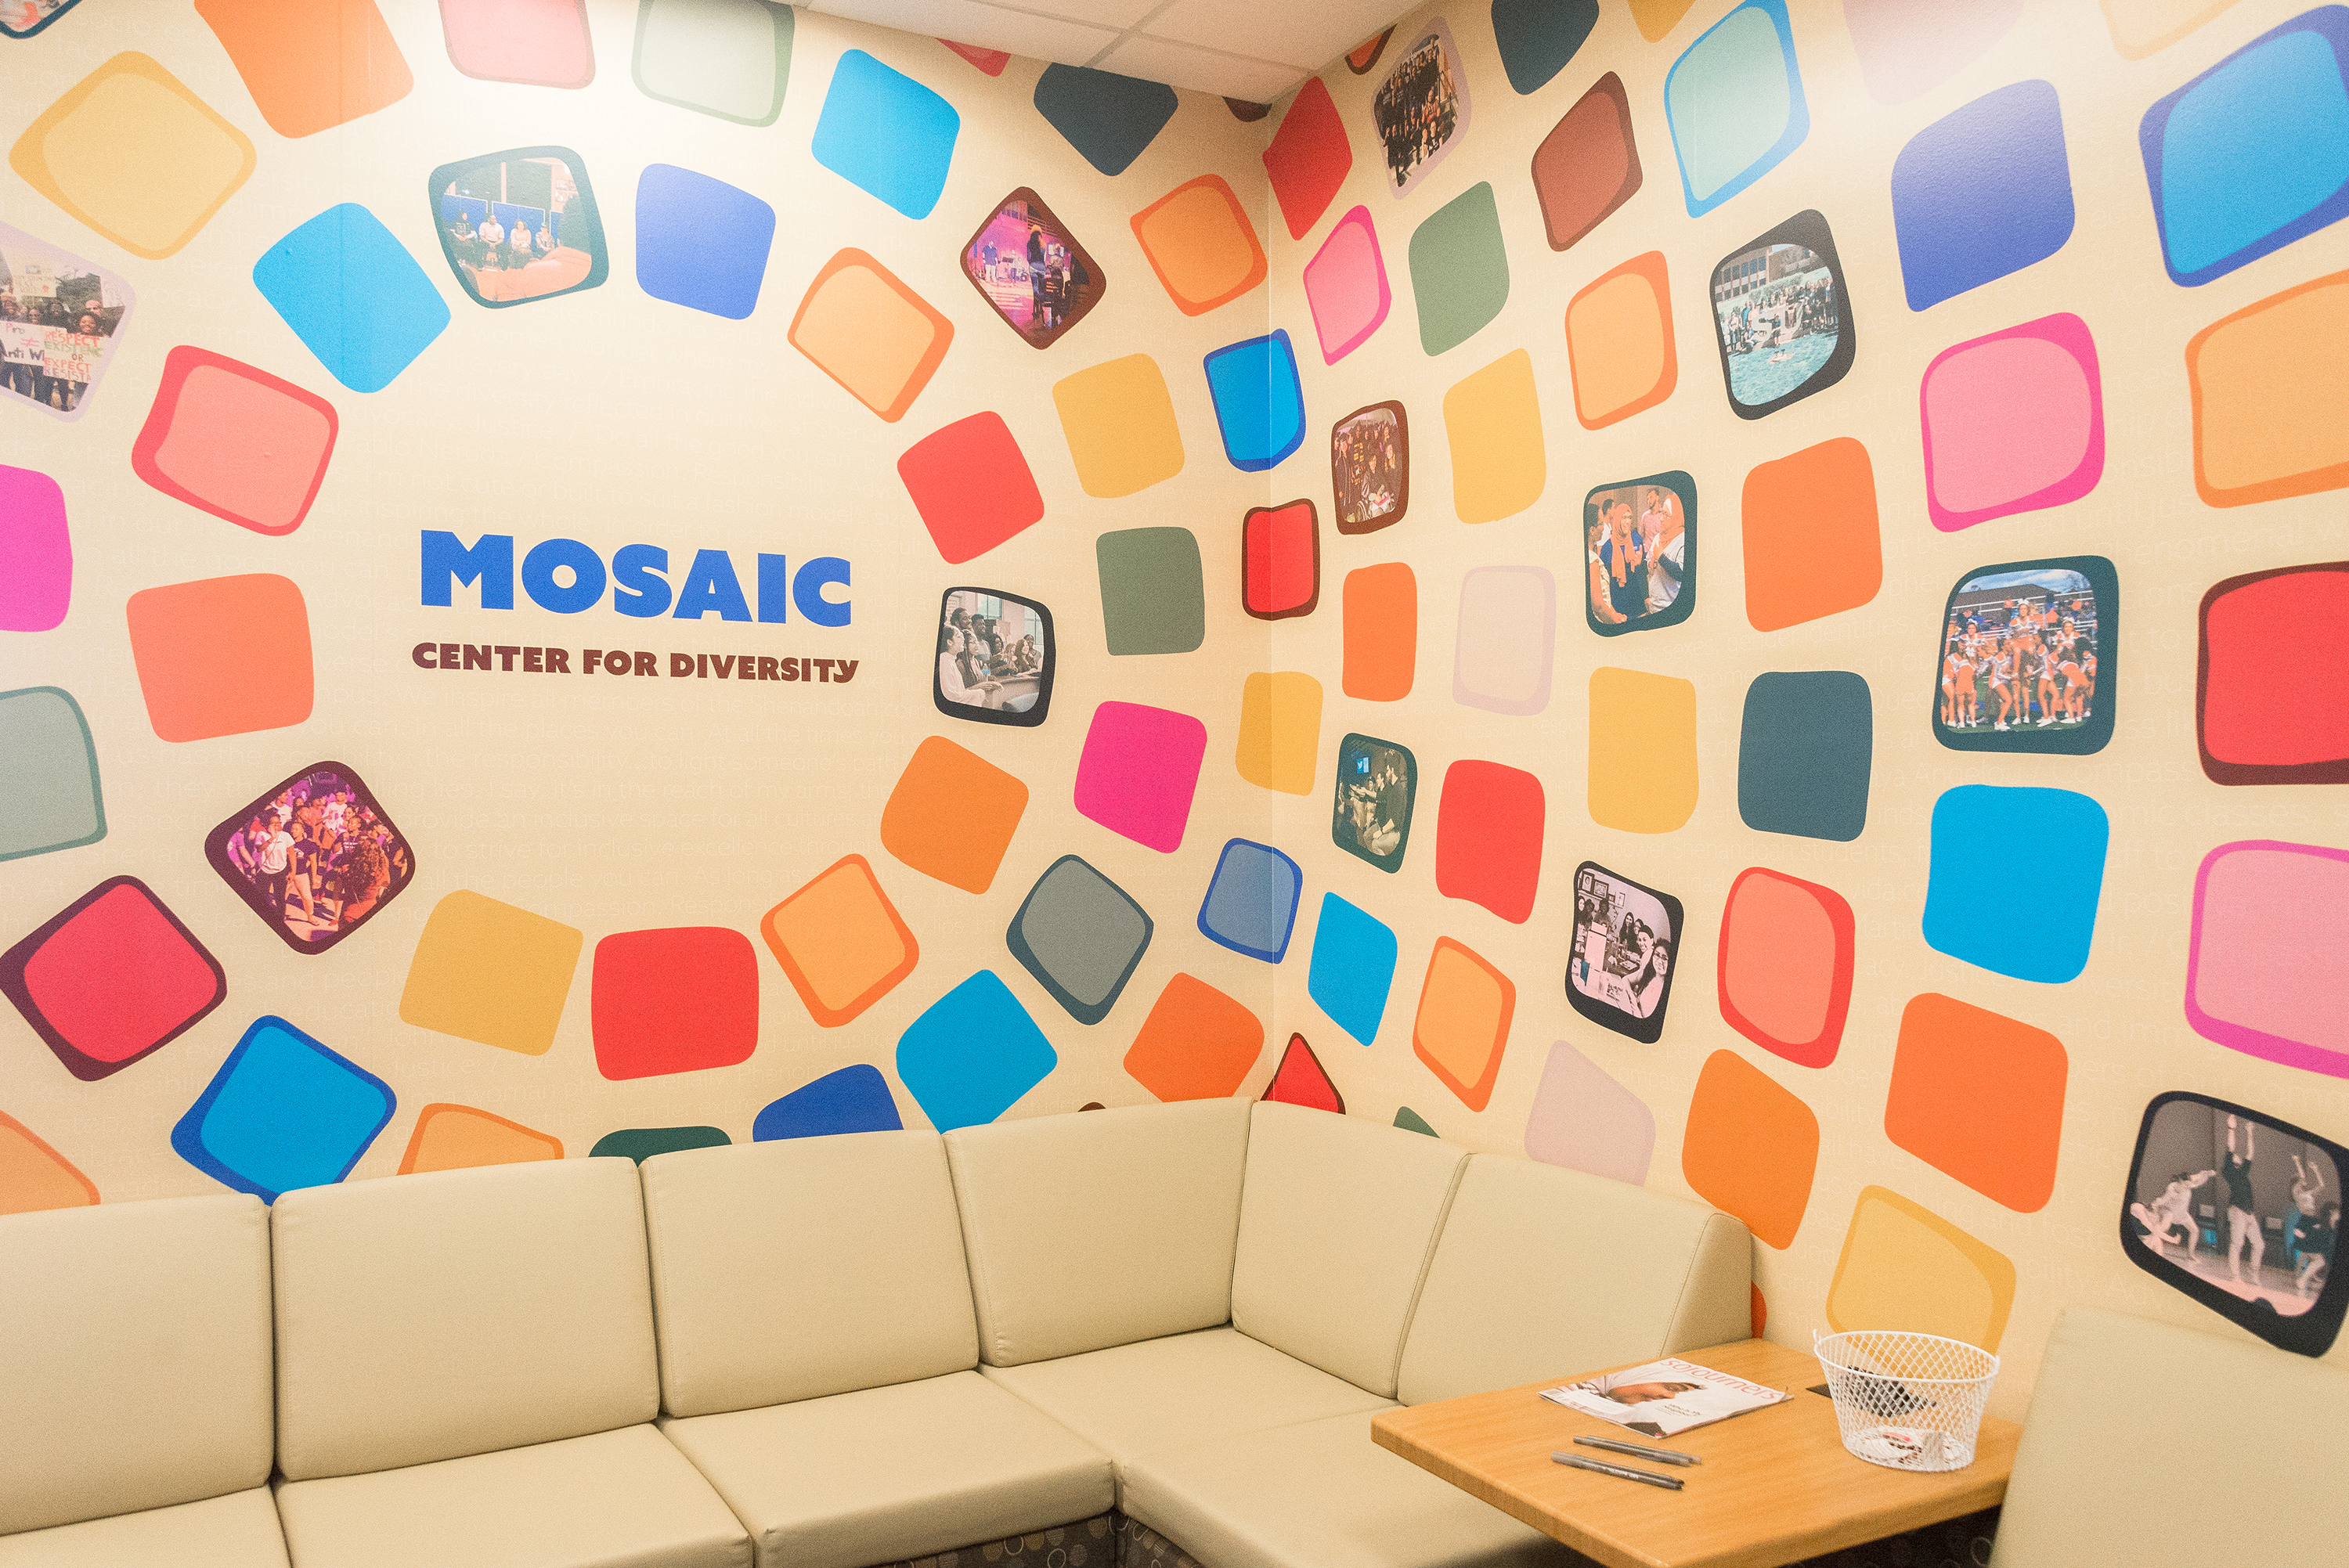 Mosaic Center for Diversity